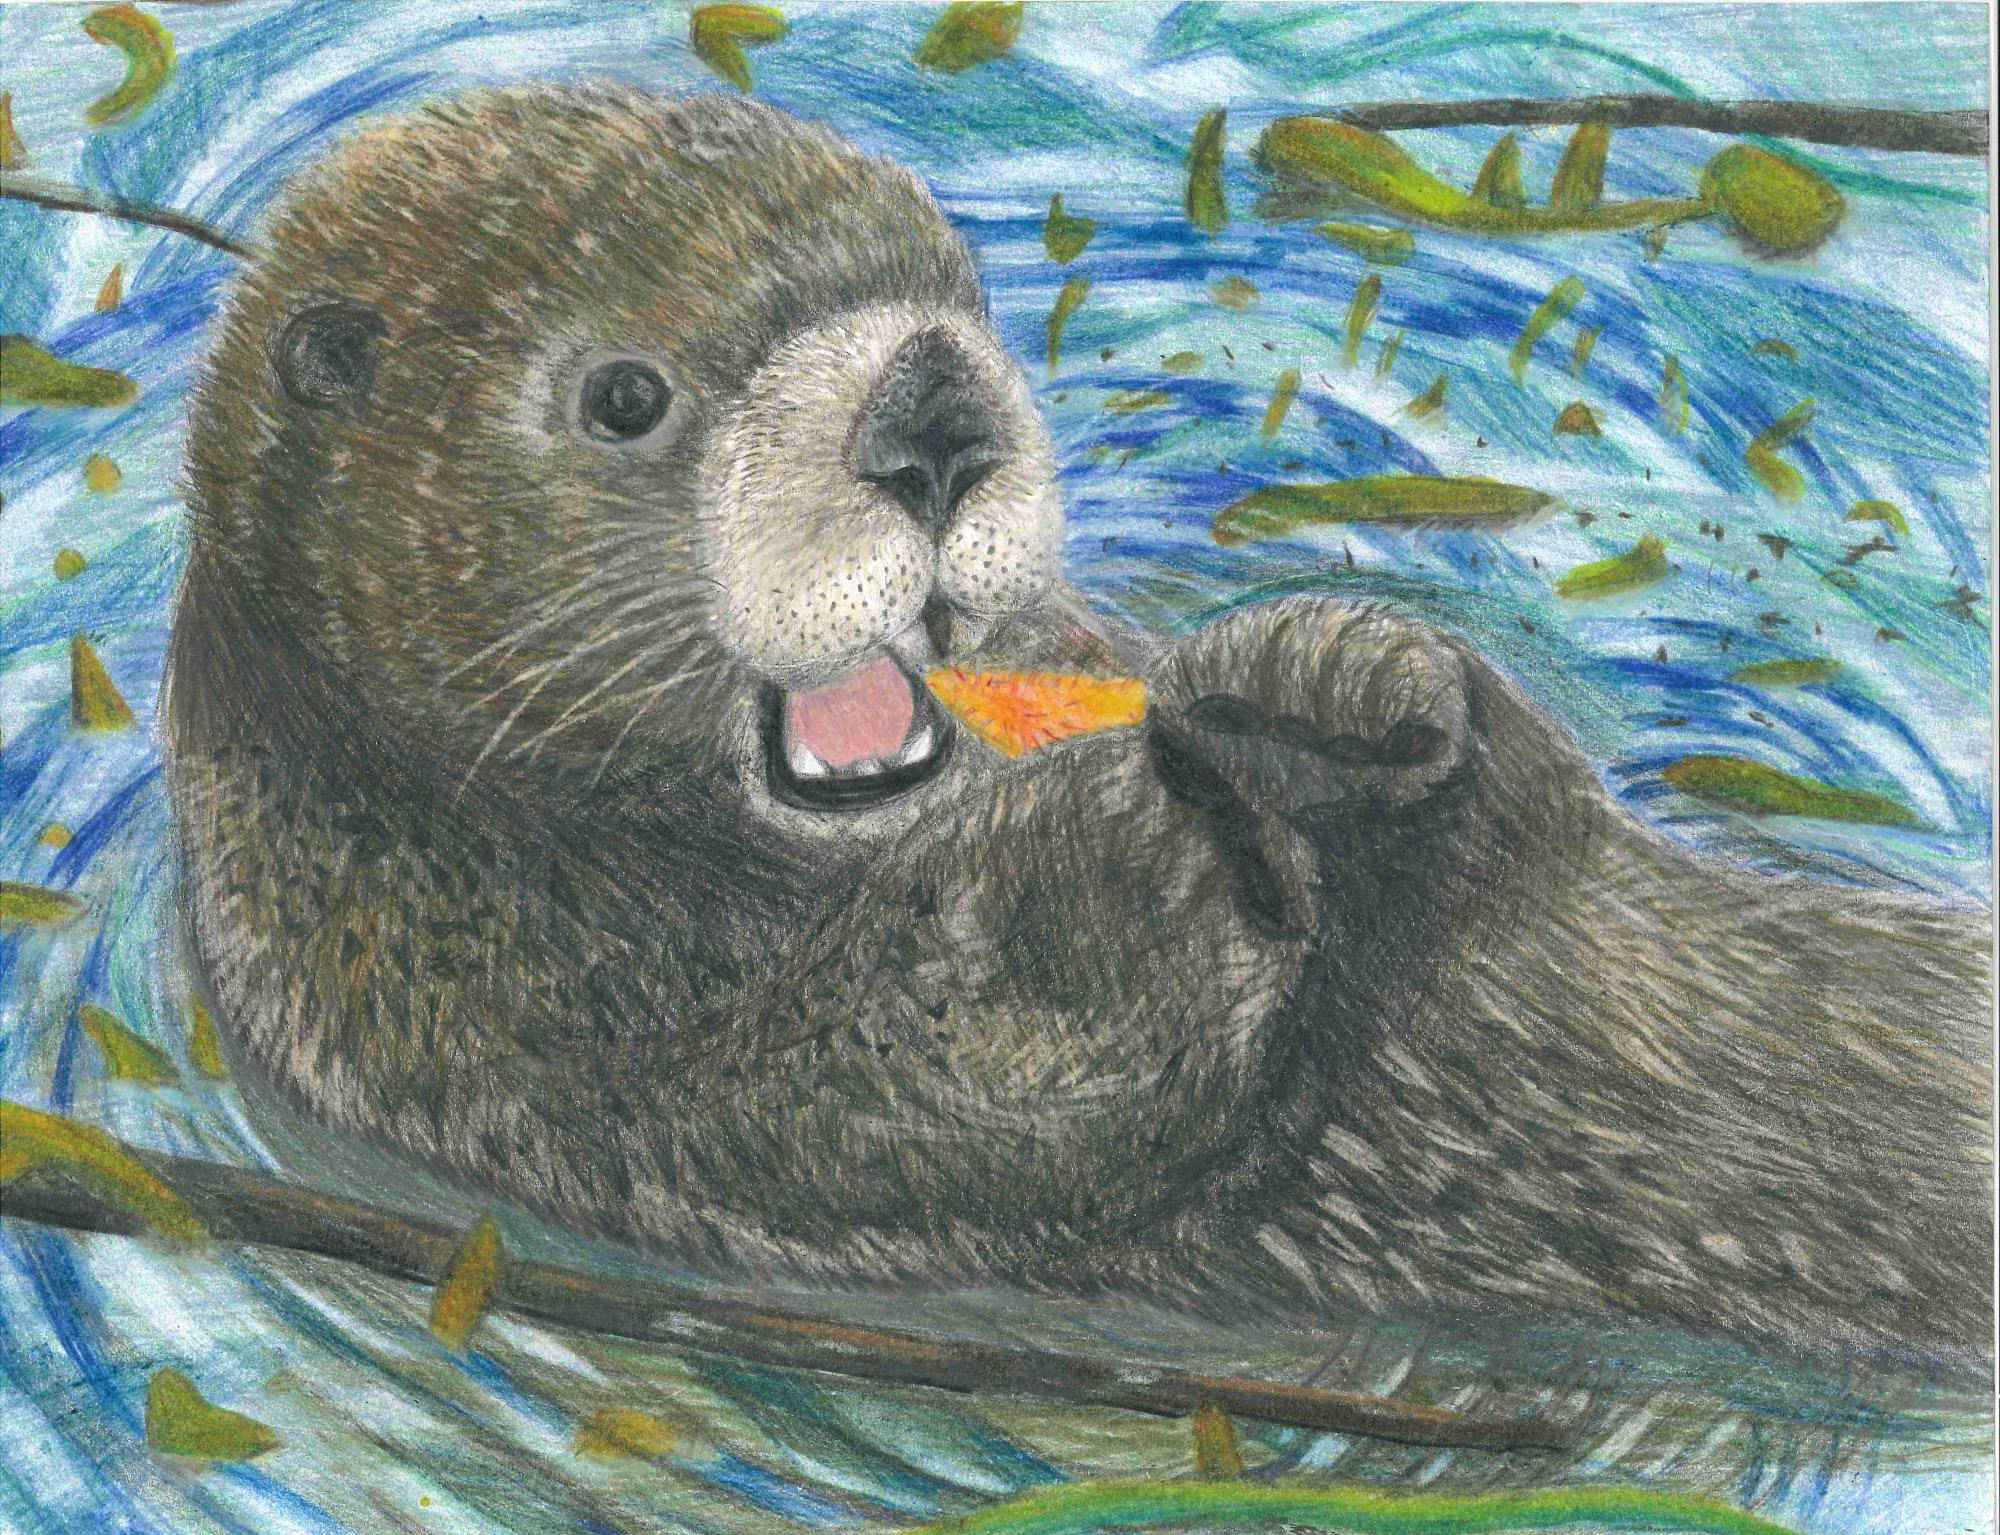 """The Sea Otter"" Jill Wang, age 12. Union City, California, United States. River of Words 2018 Finalist."